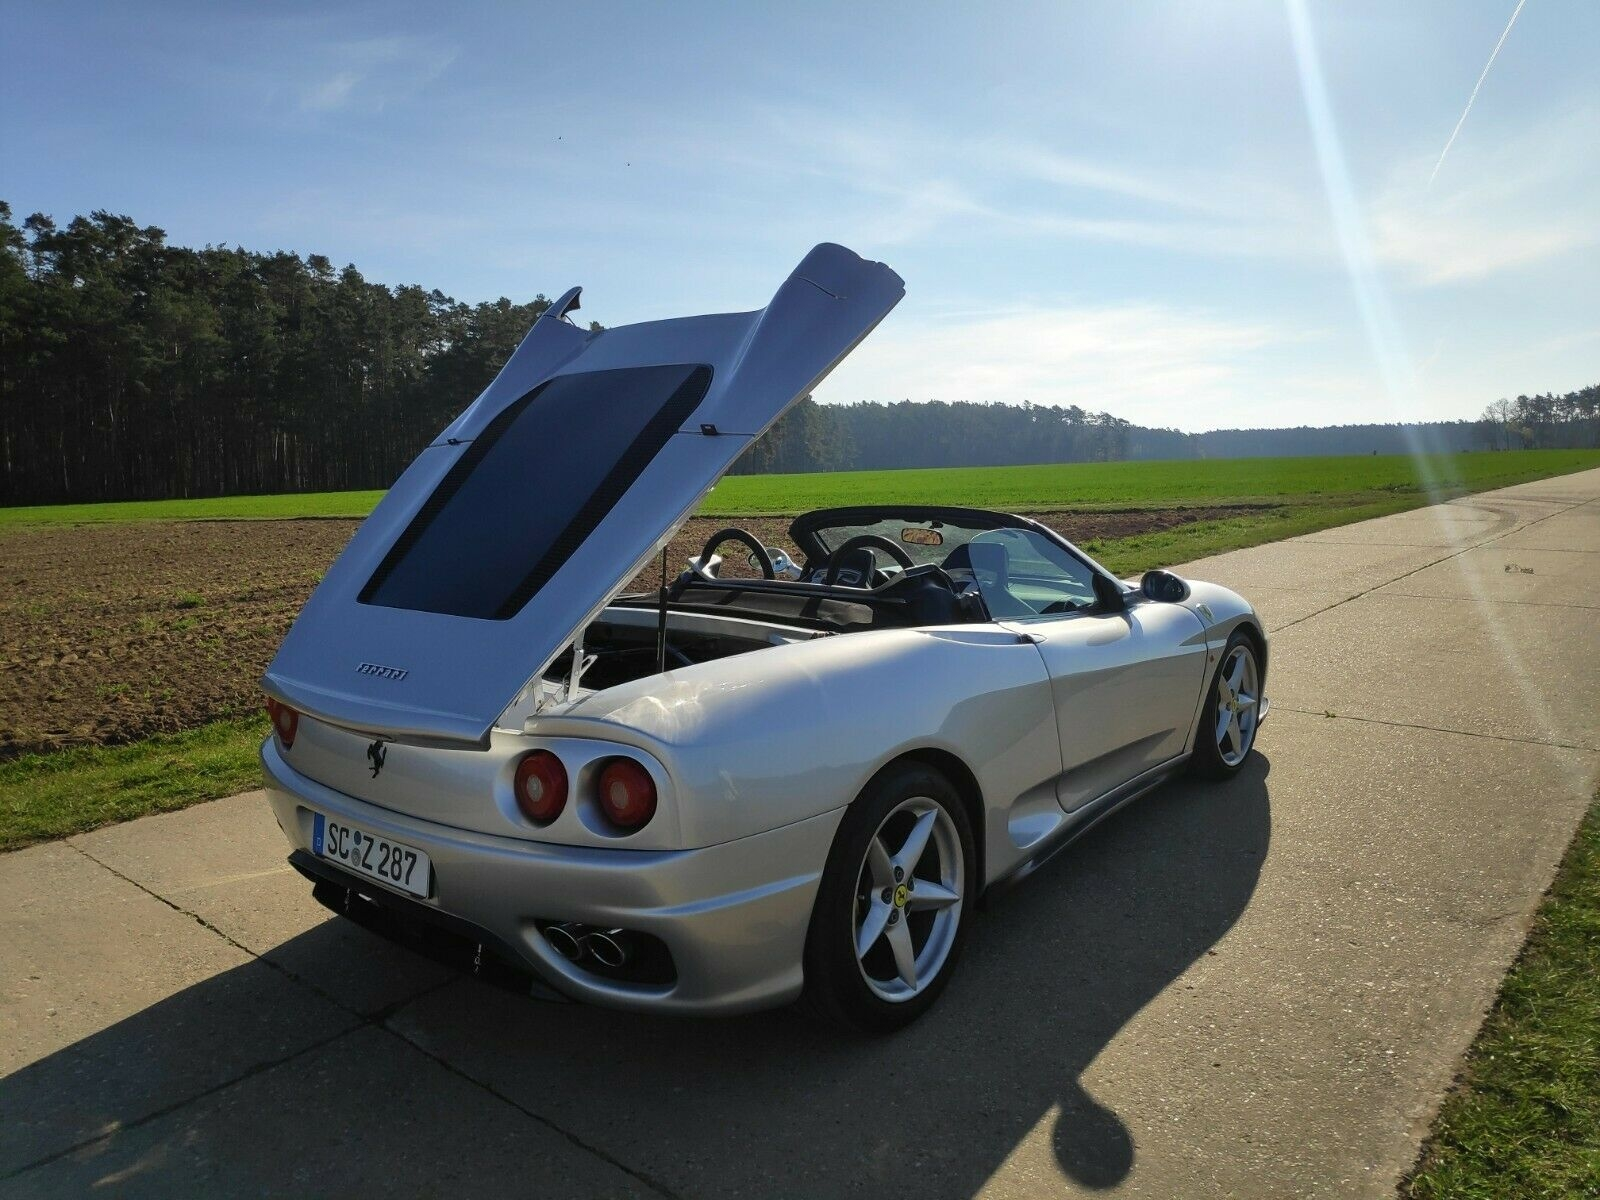 Toyota MR2 replica Ferrari 360 Spider